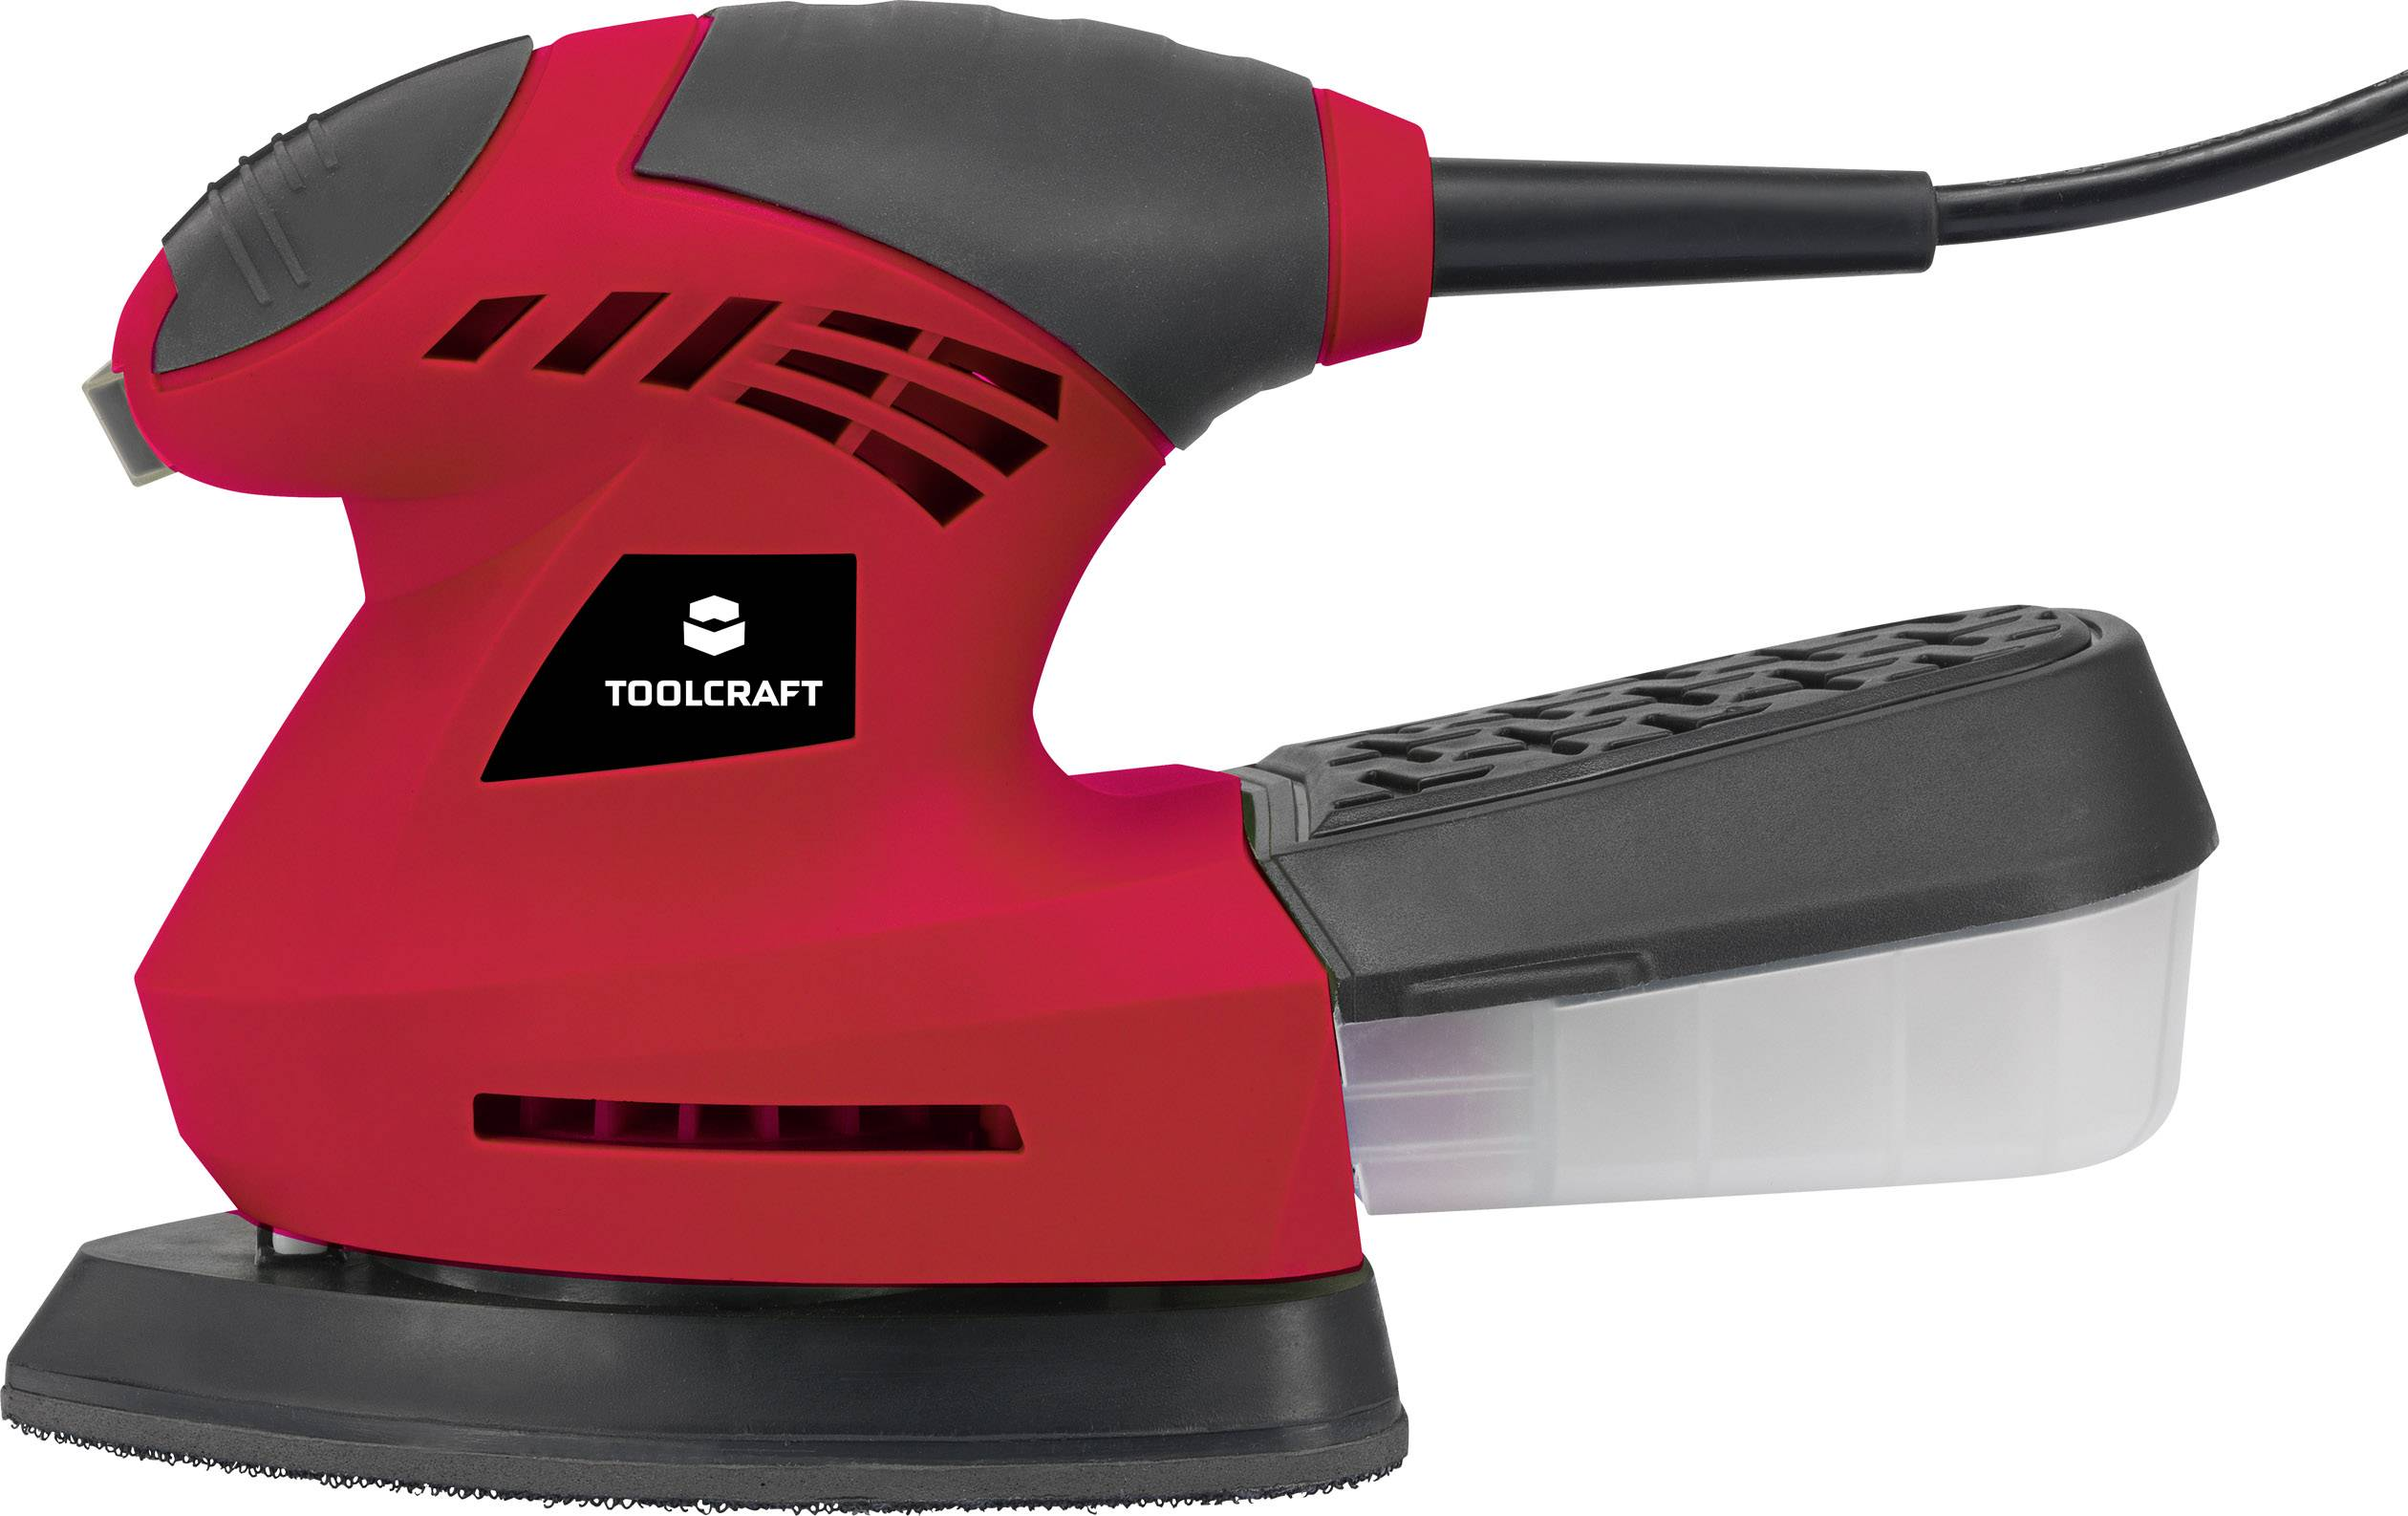 TOOLCRAFT T-MS 200 W 1582582 M